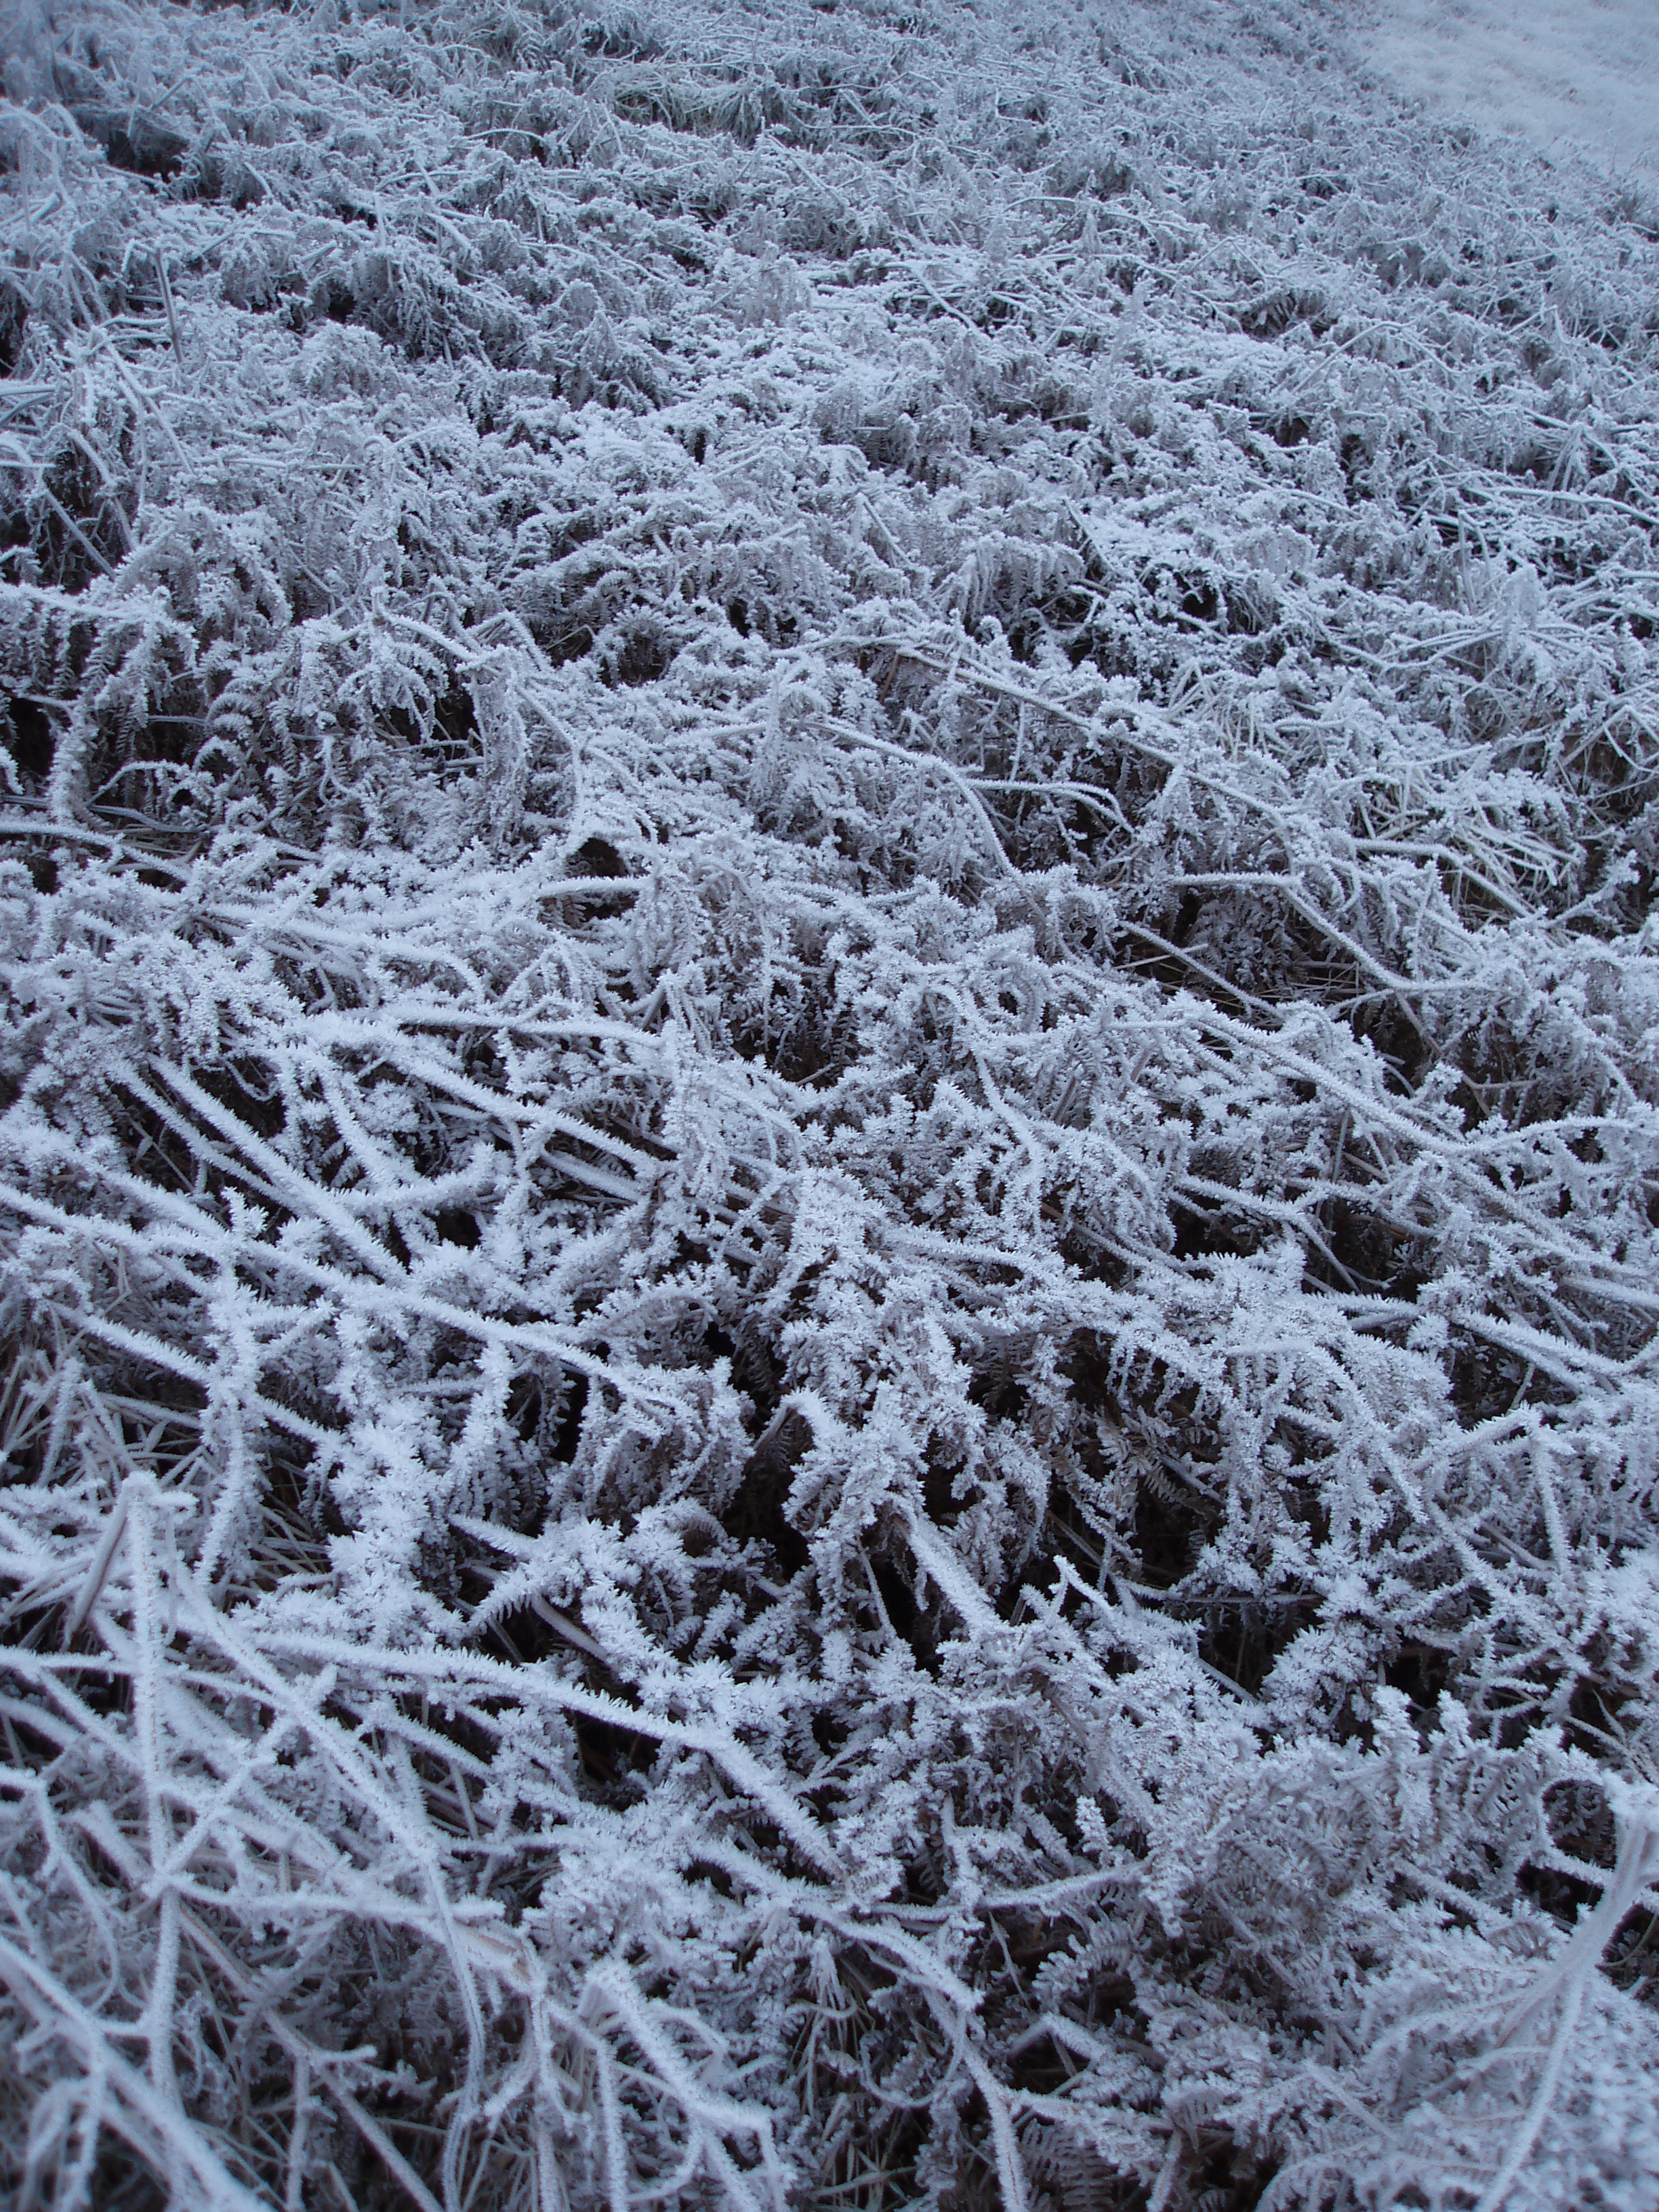 frozen braken background covered in icy white frost crystals